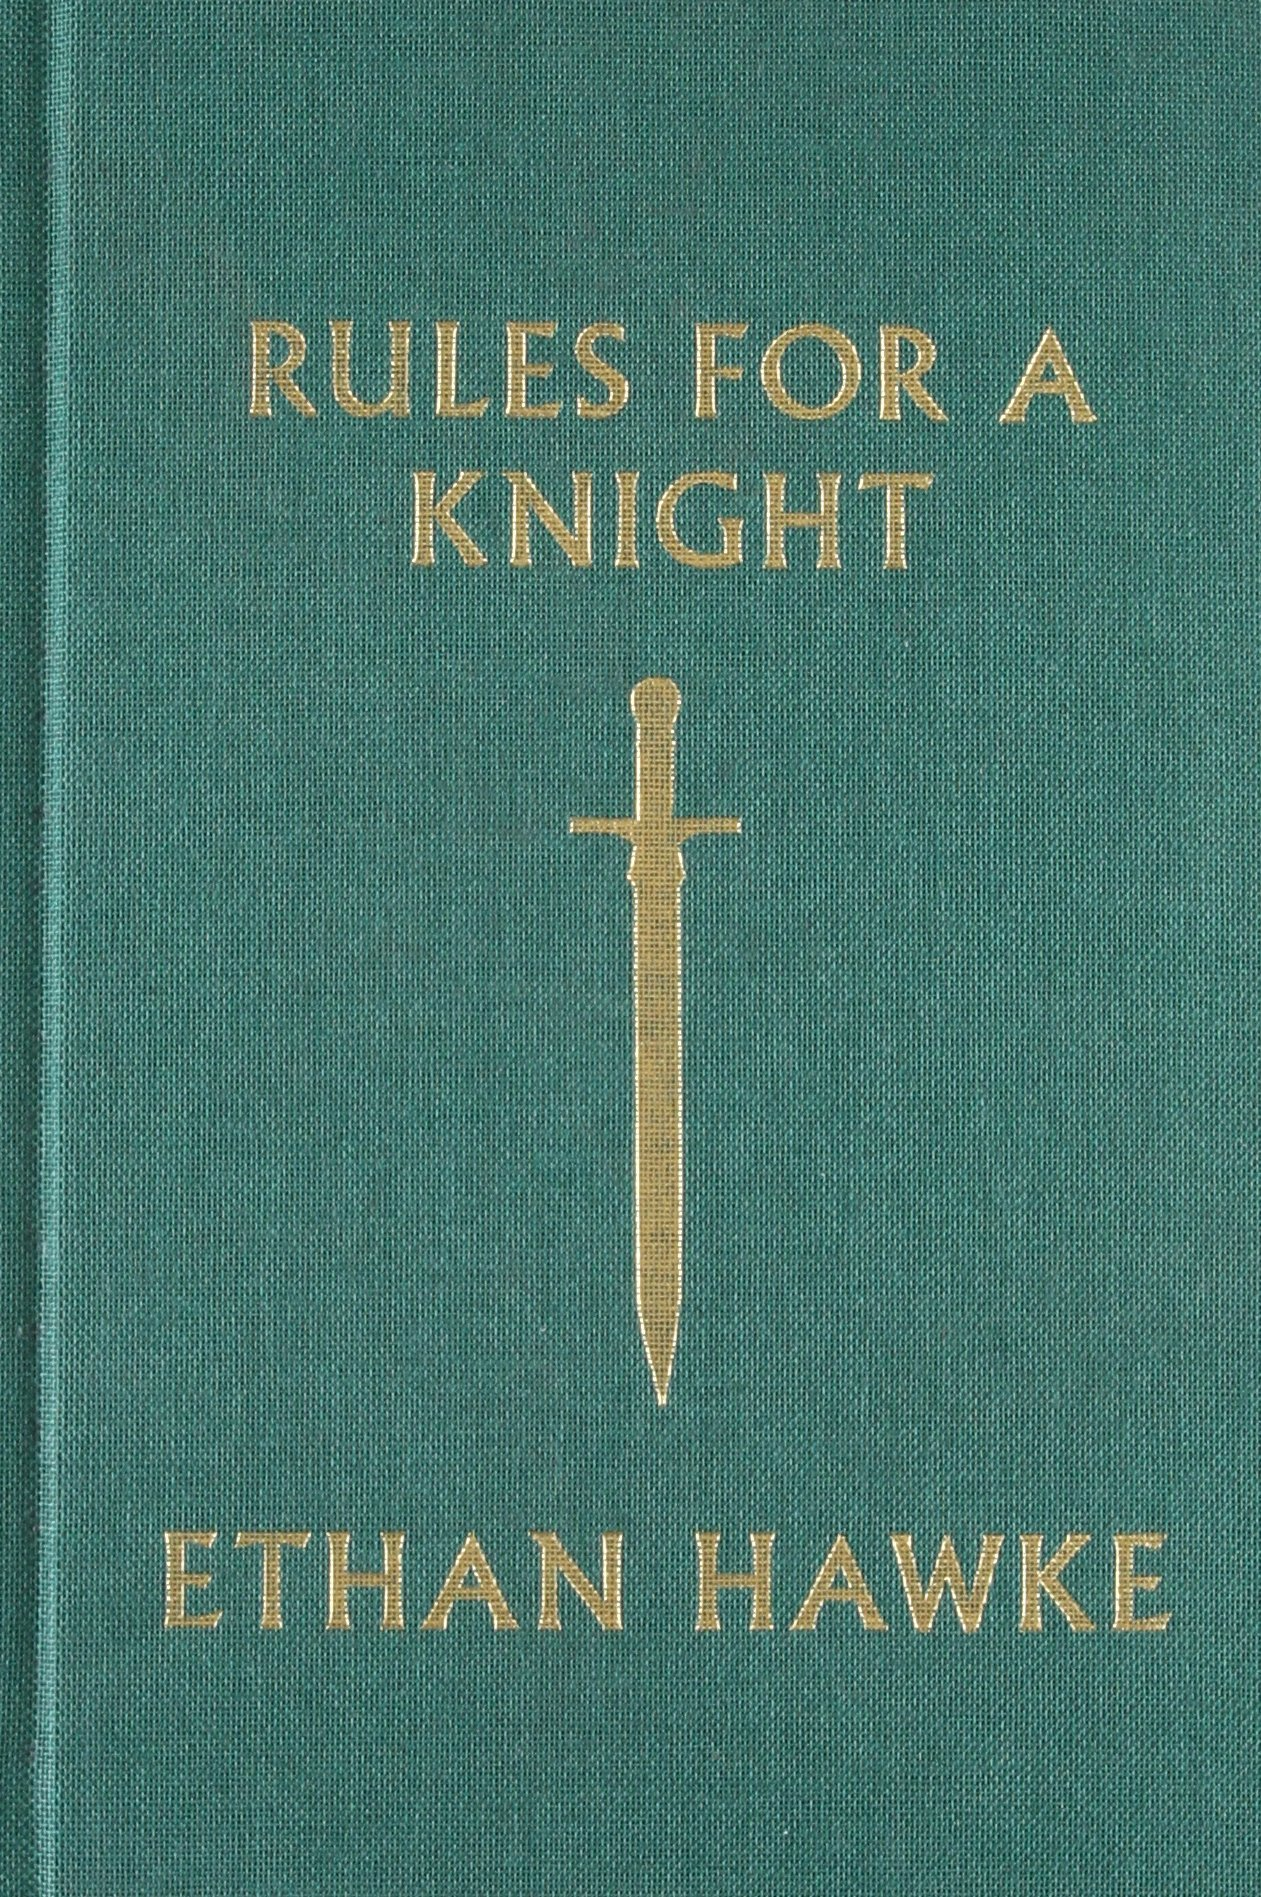 rules for a knight ethan hawke